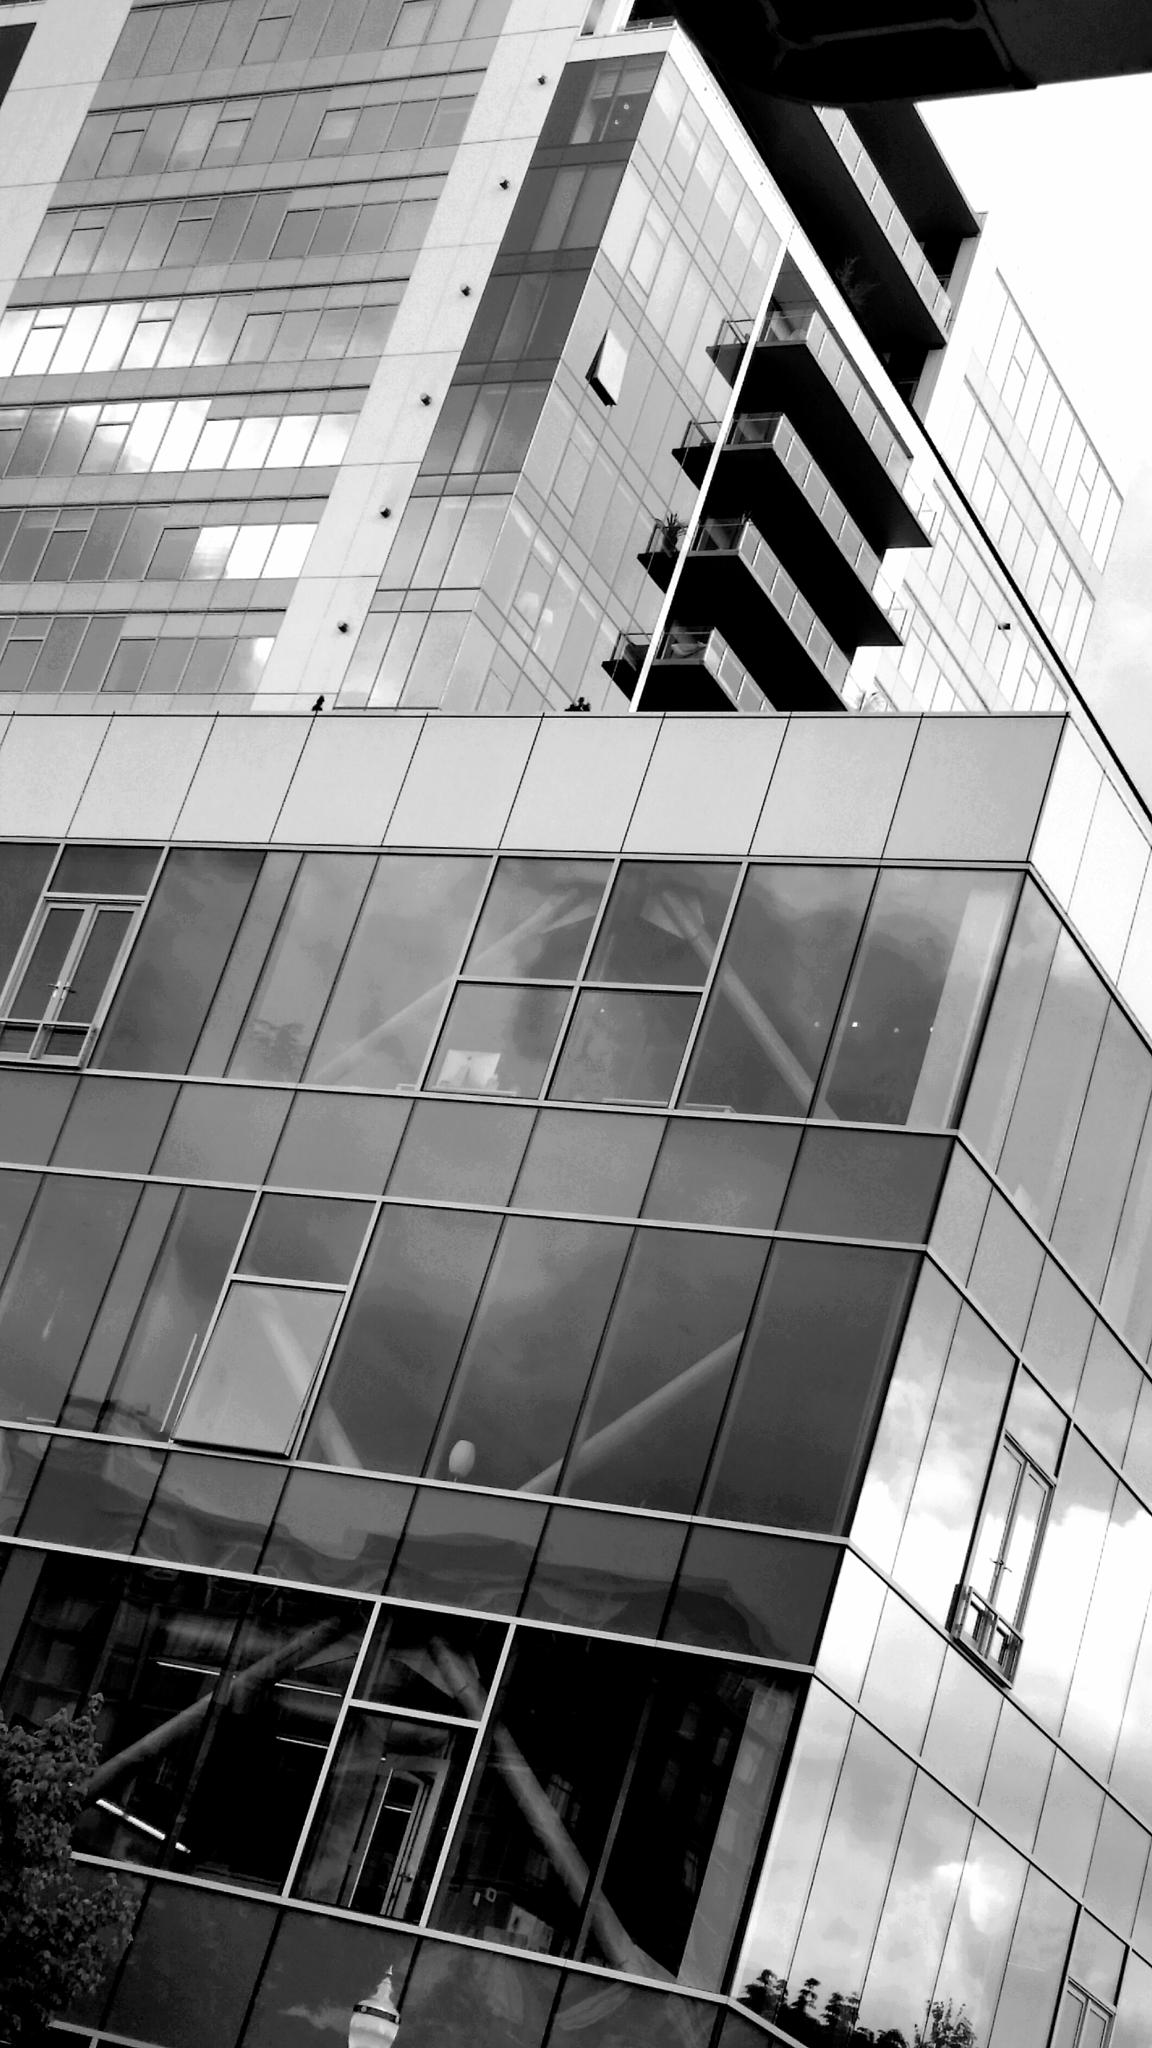 Towers of Glass & Steel by J. Wetmore Photography